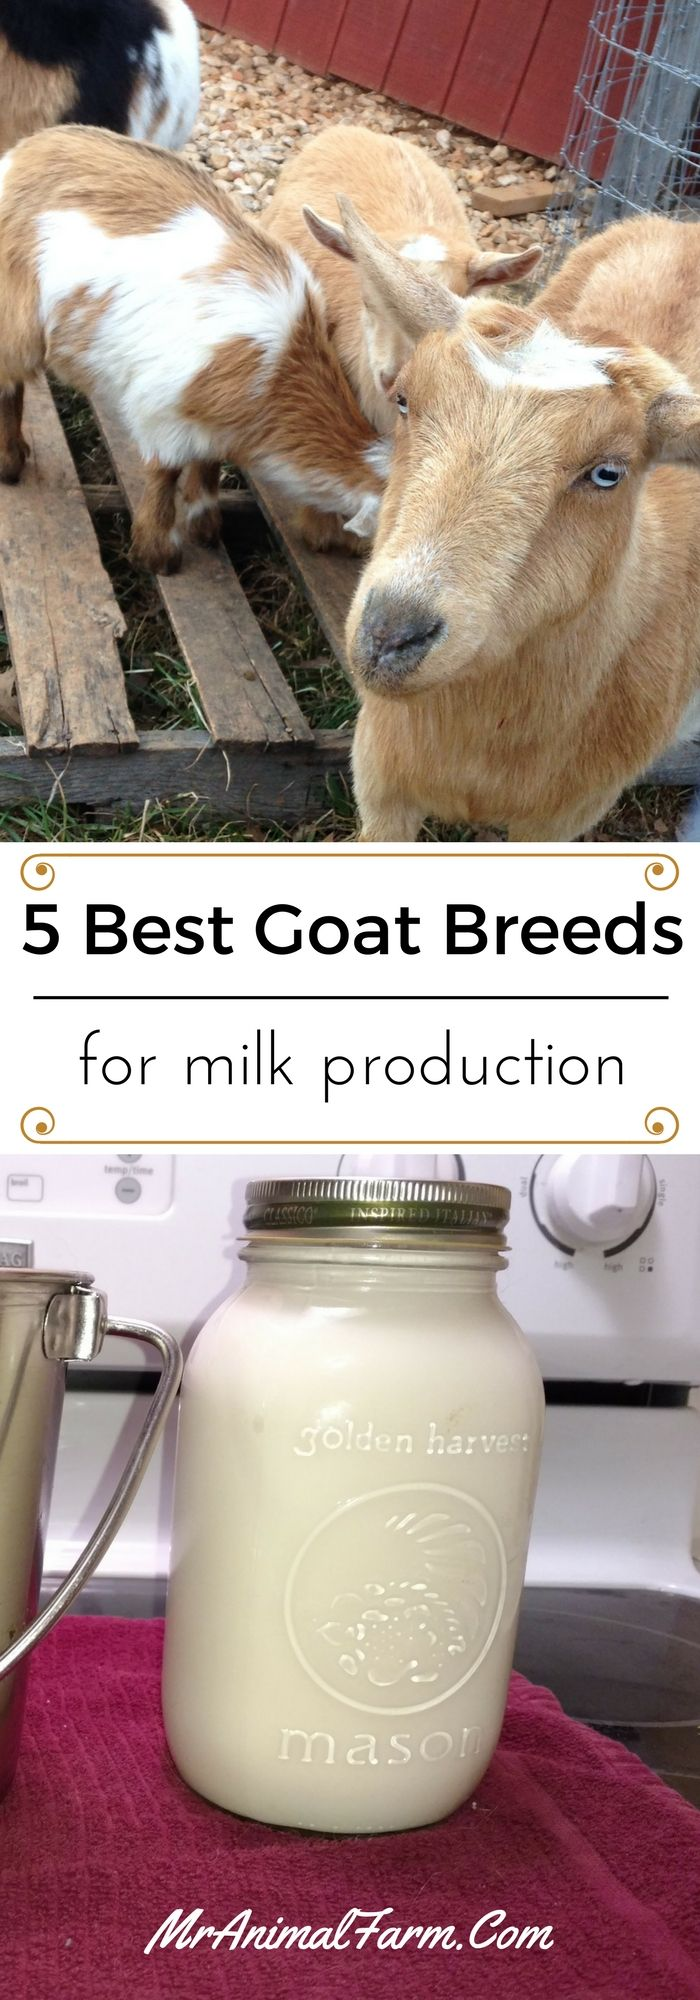 If you are looking for a goat with top milk production, you need to check out these best dairy goat breeds.